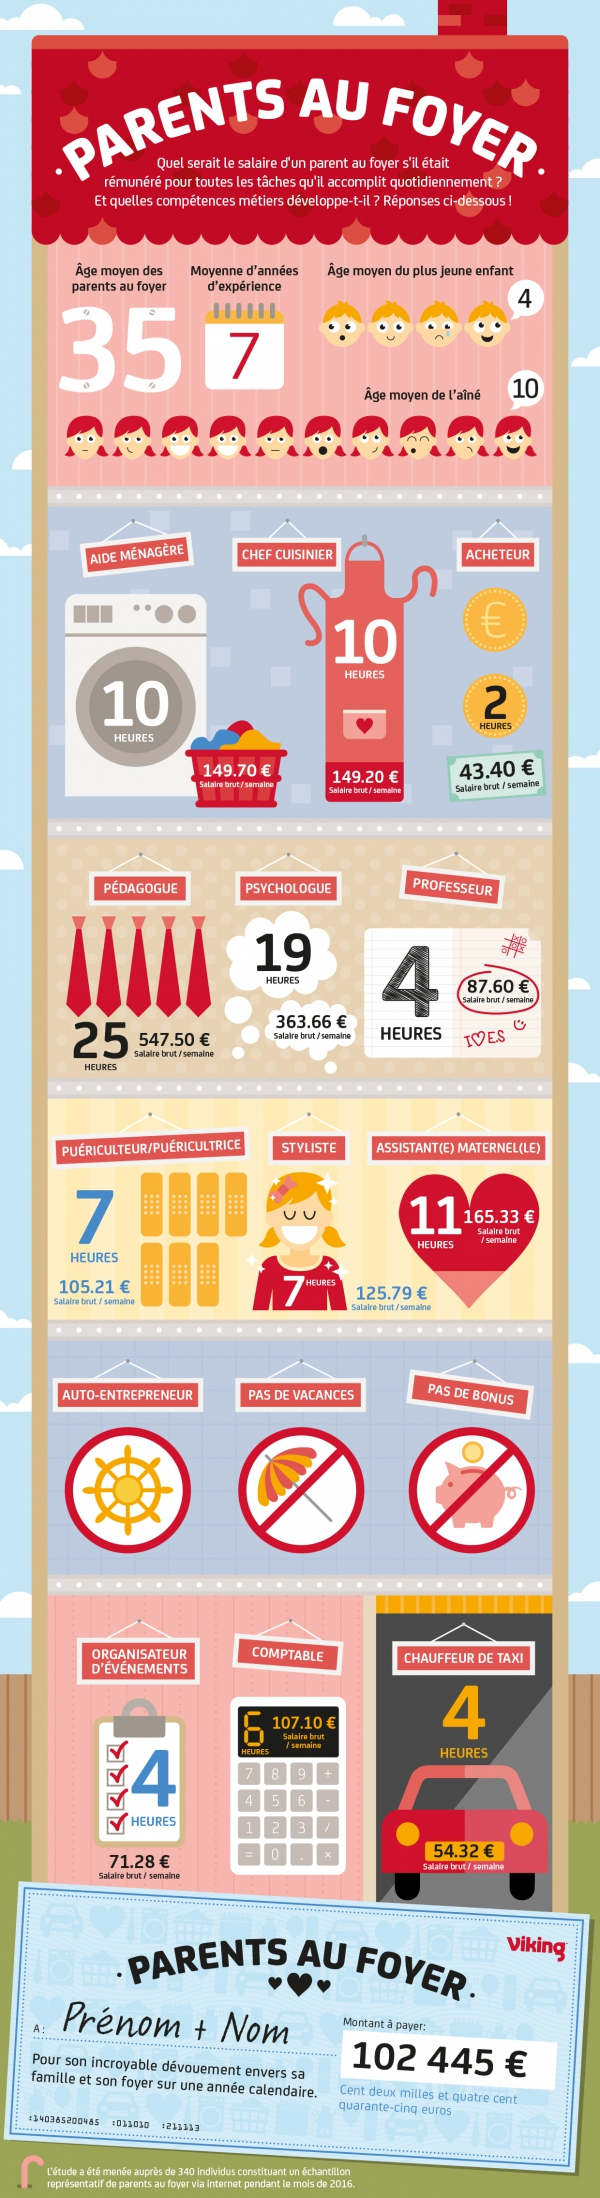 infographie repartitions taches et argent Parents au foyer